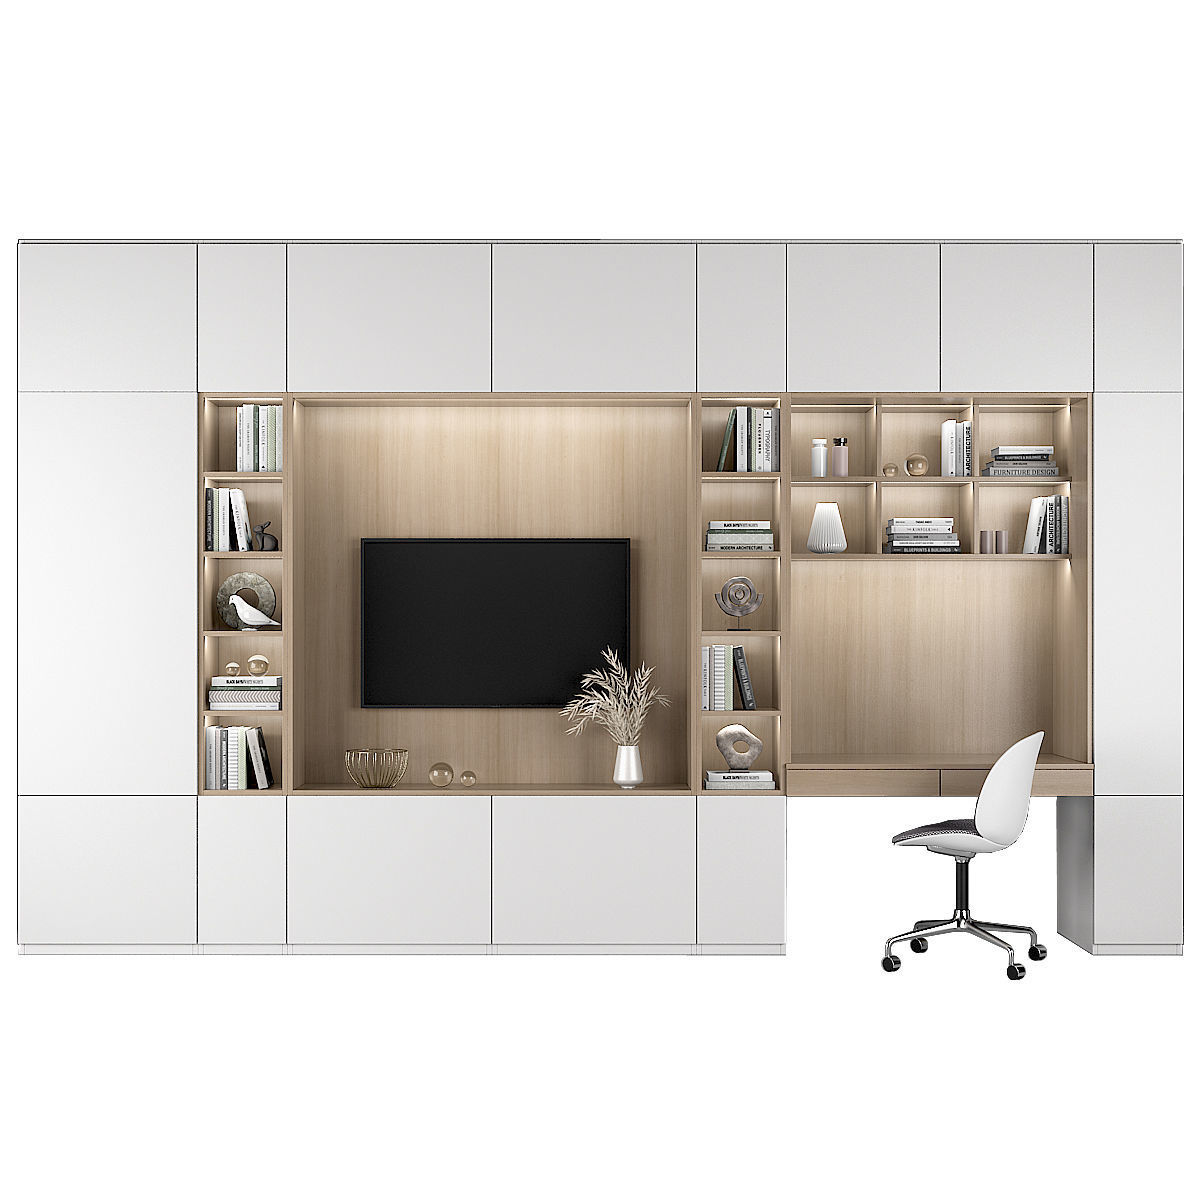 TV Shelf and workplace 72